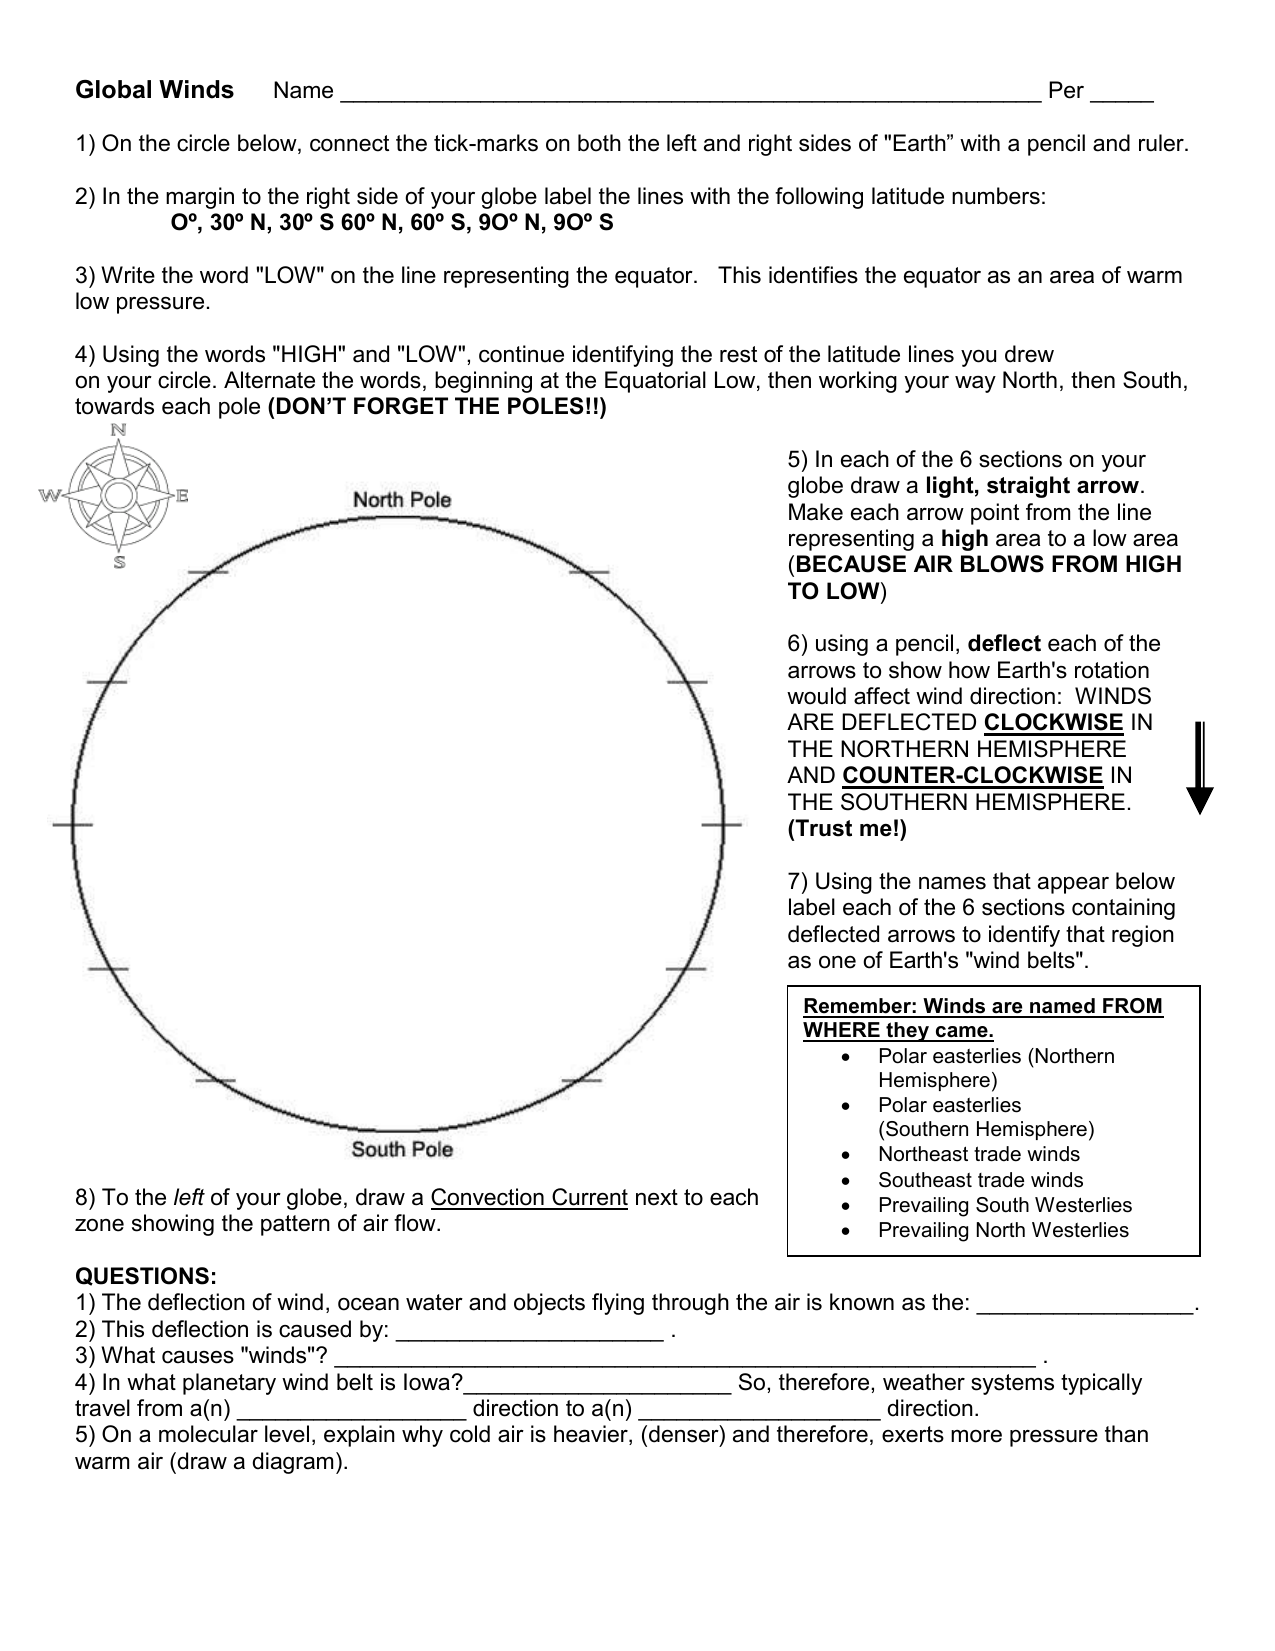 worksheet Global Wind Patterns Worksheet purpose to draw earths planetary wind belts by carefully following